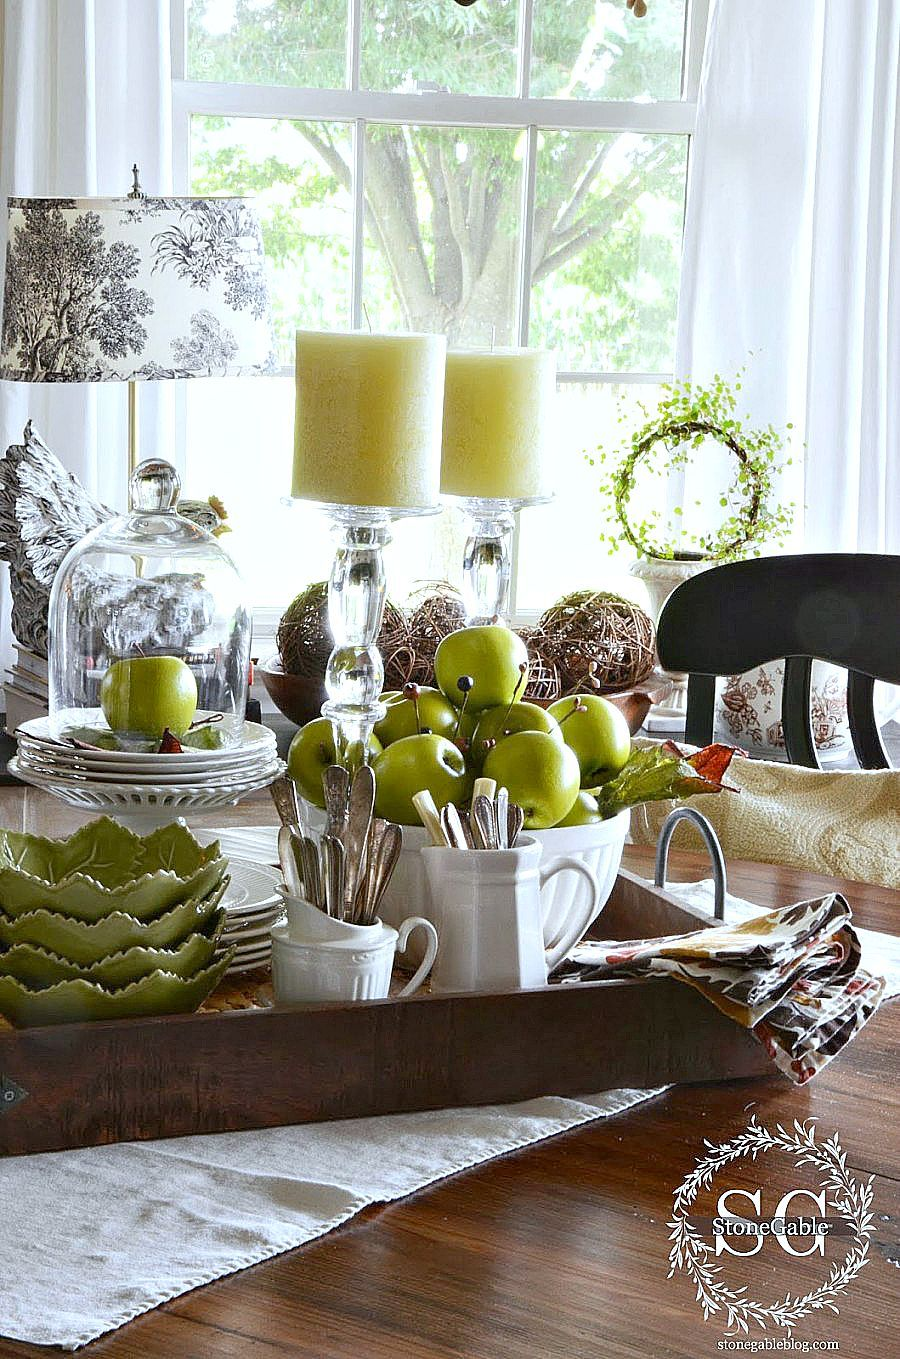 Fabulous Fun And Functional Cake Stands Not Just For Stonegable Kitchen Vignettes Decor Table